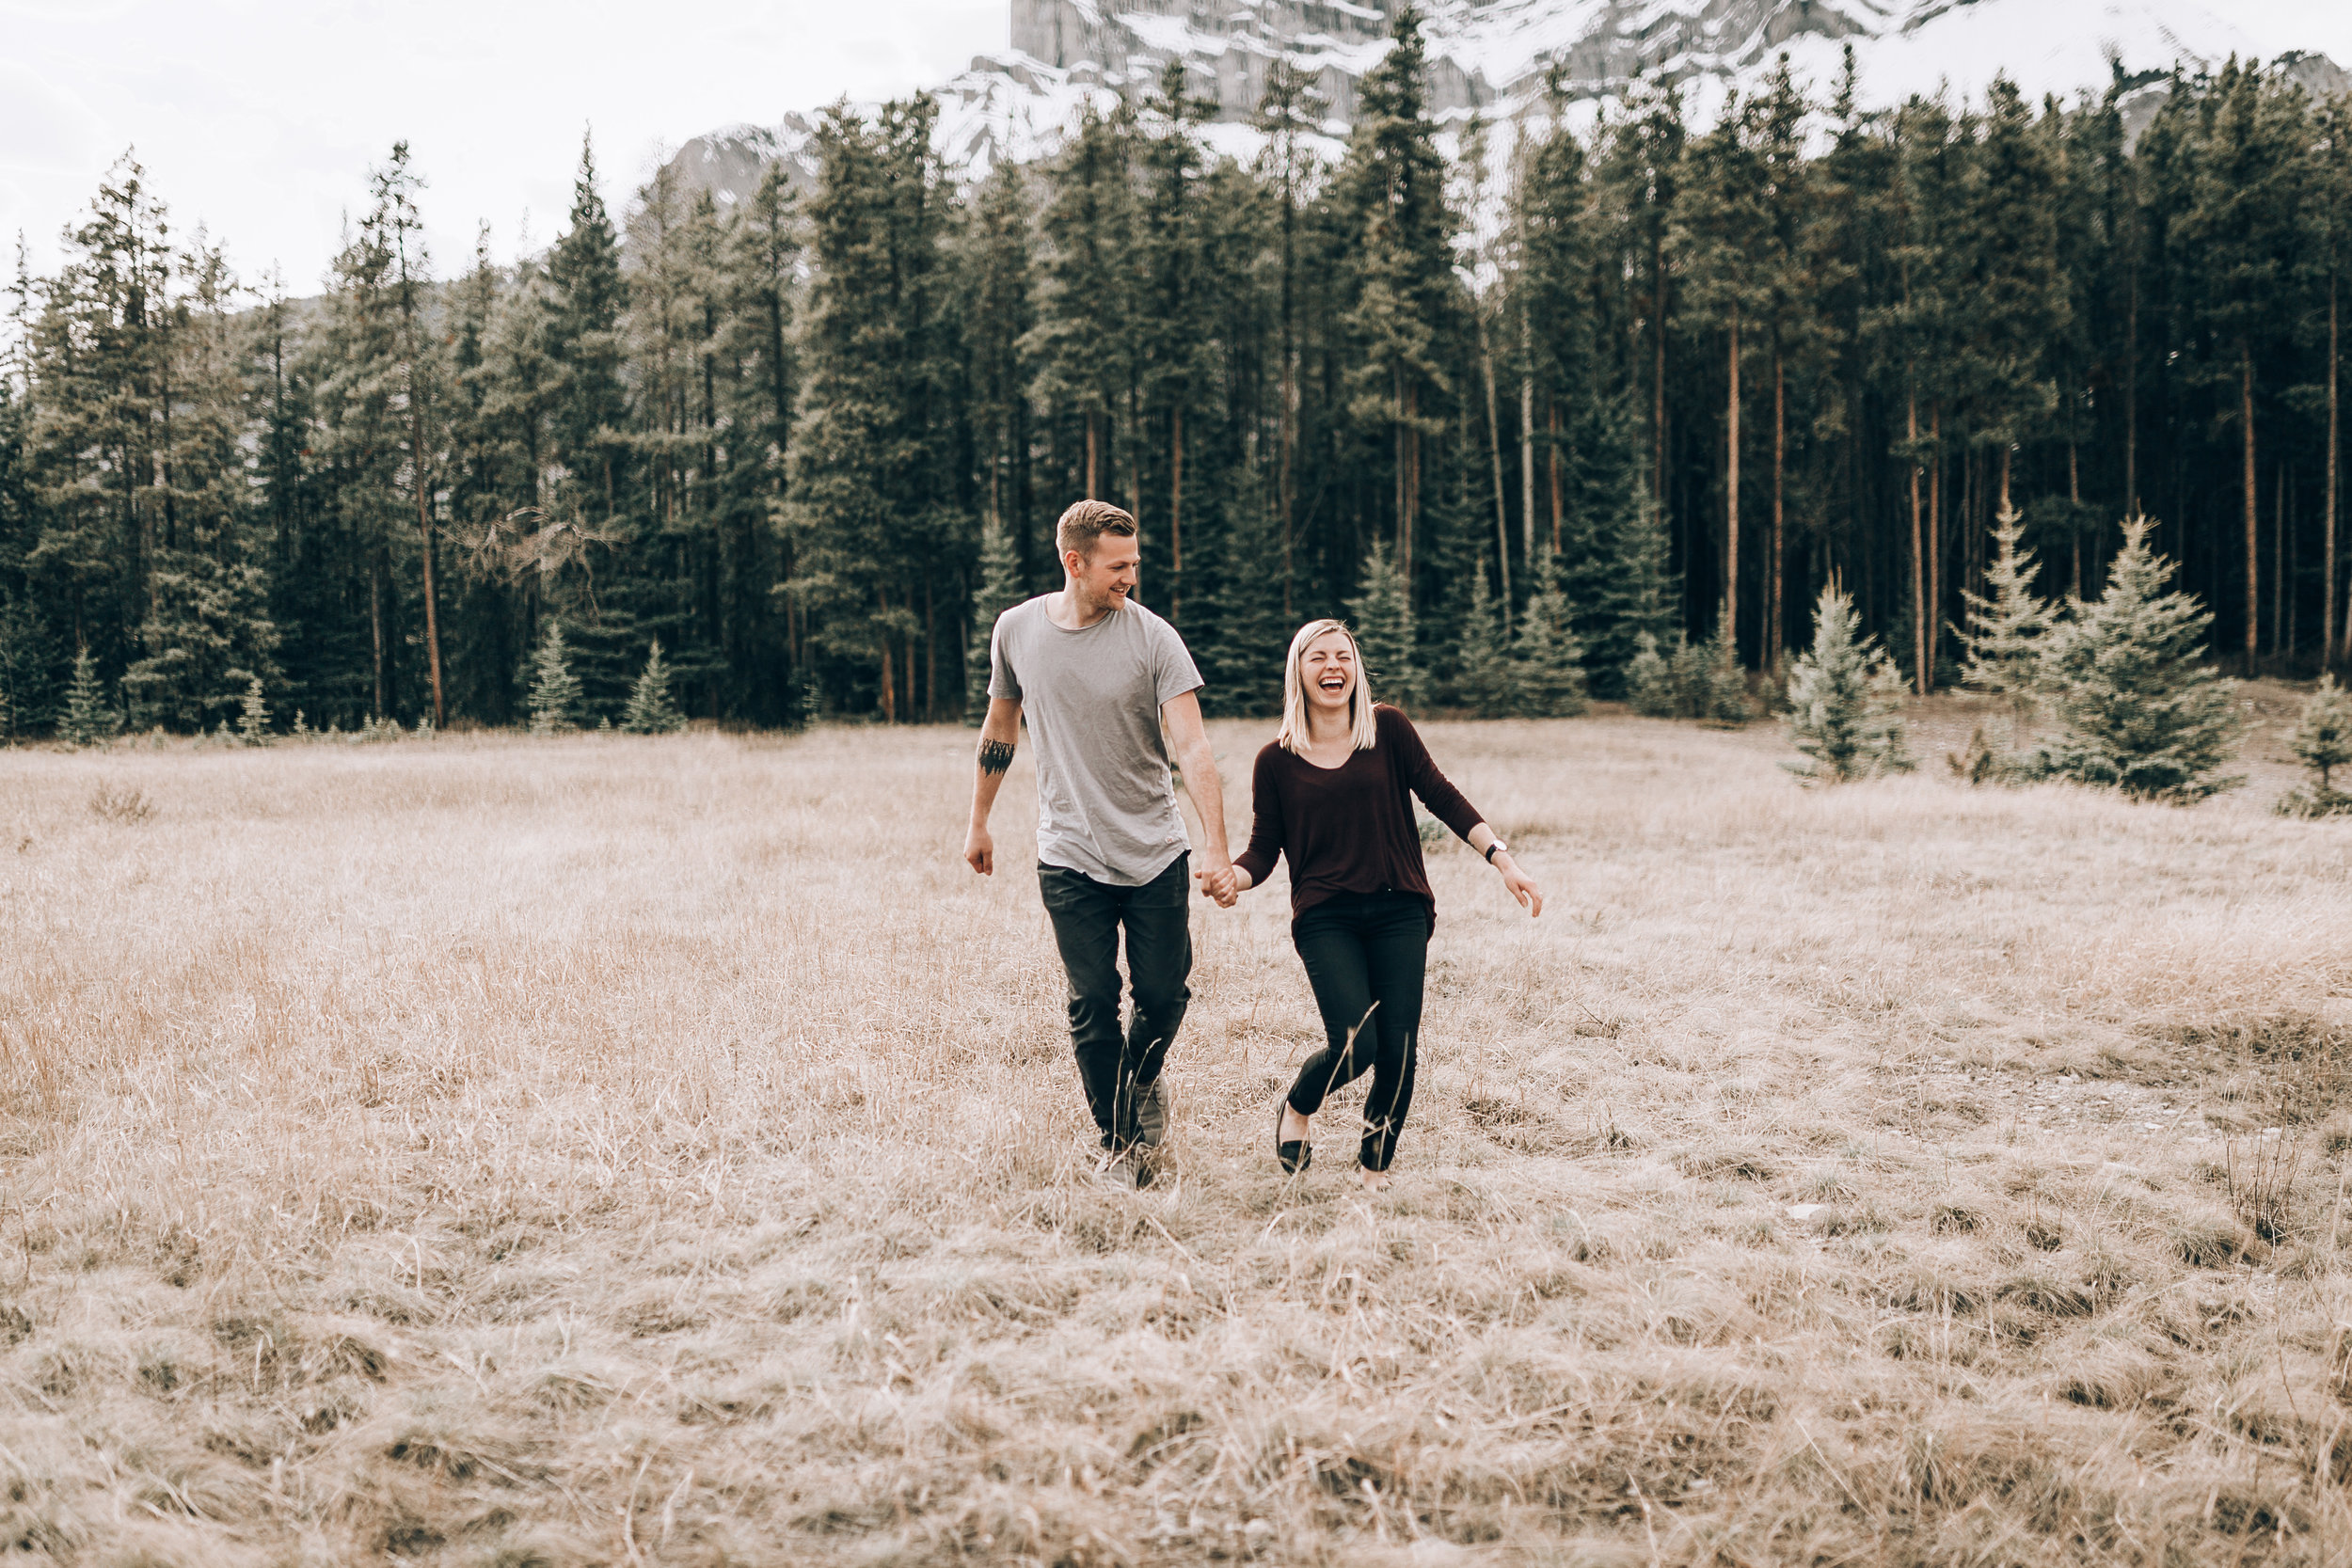 simpleperfectionsphotography.cullen+chelsey-3.jpg